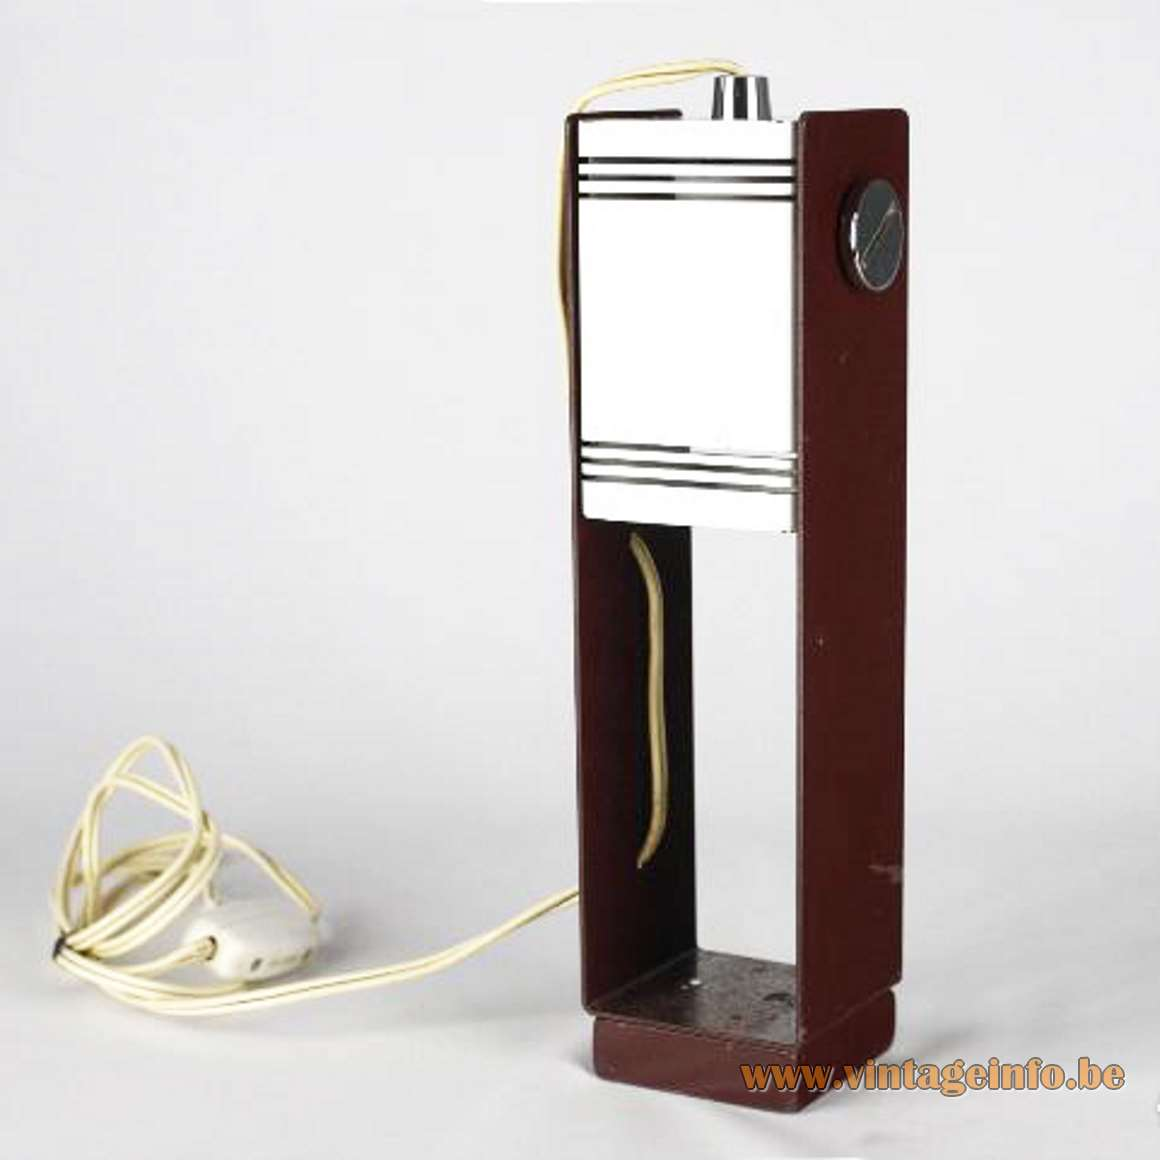 Estiluz geometric table lamp in brown and white metal adjustable E27 socket 1970s Spain